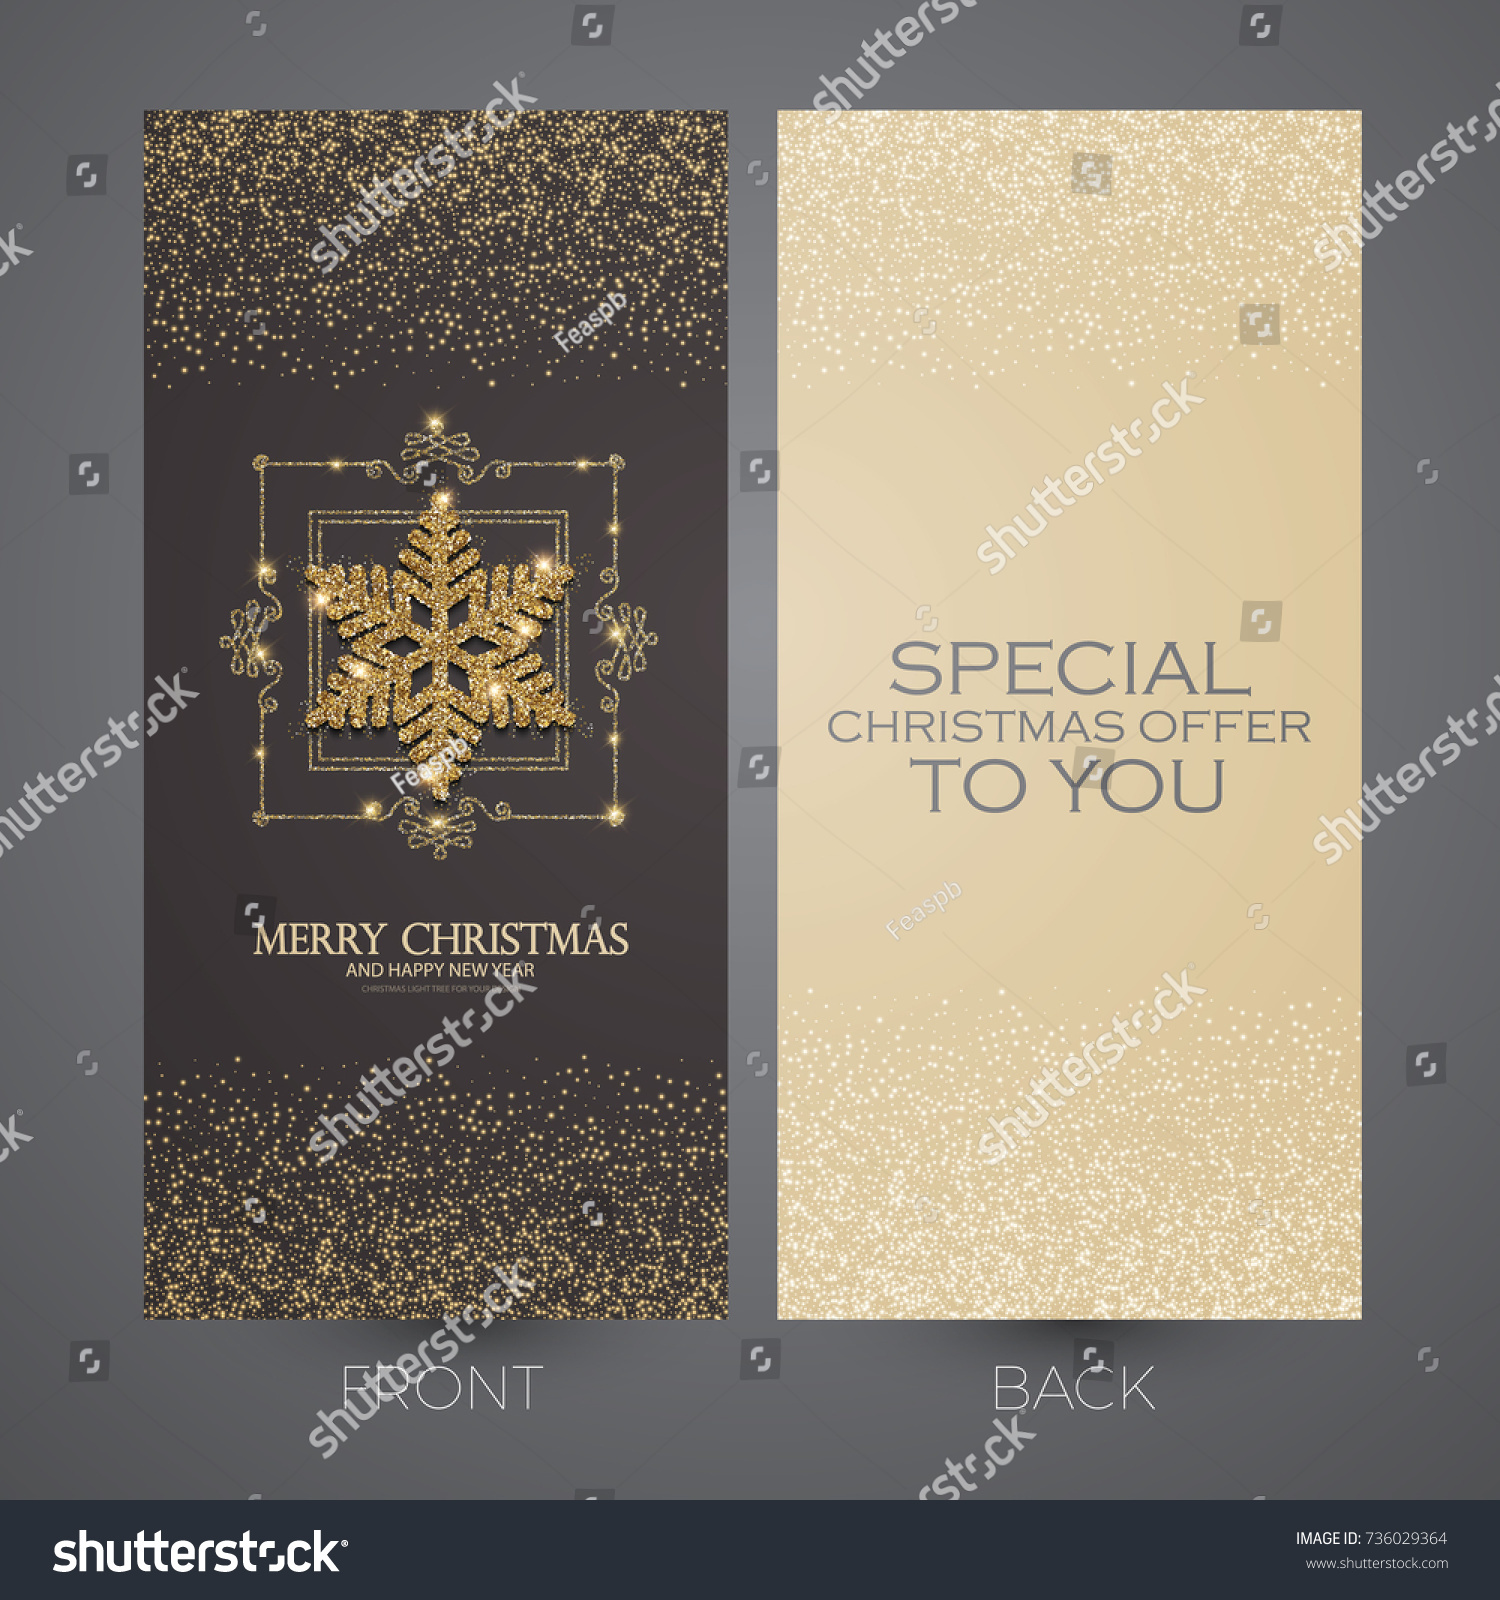 Merry Christmas New Year Offer Cards Stock Vector (2018) 736029364 ...